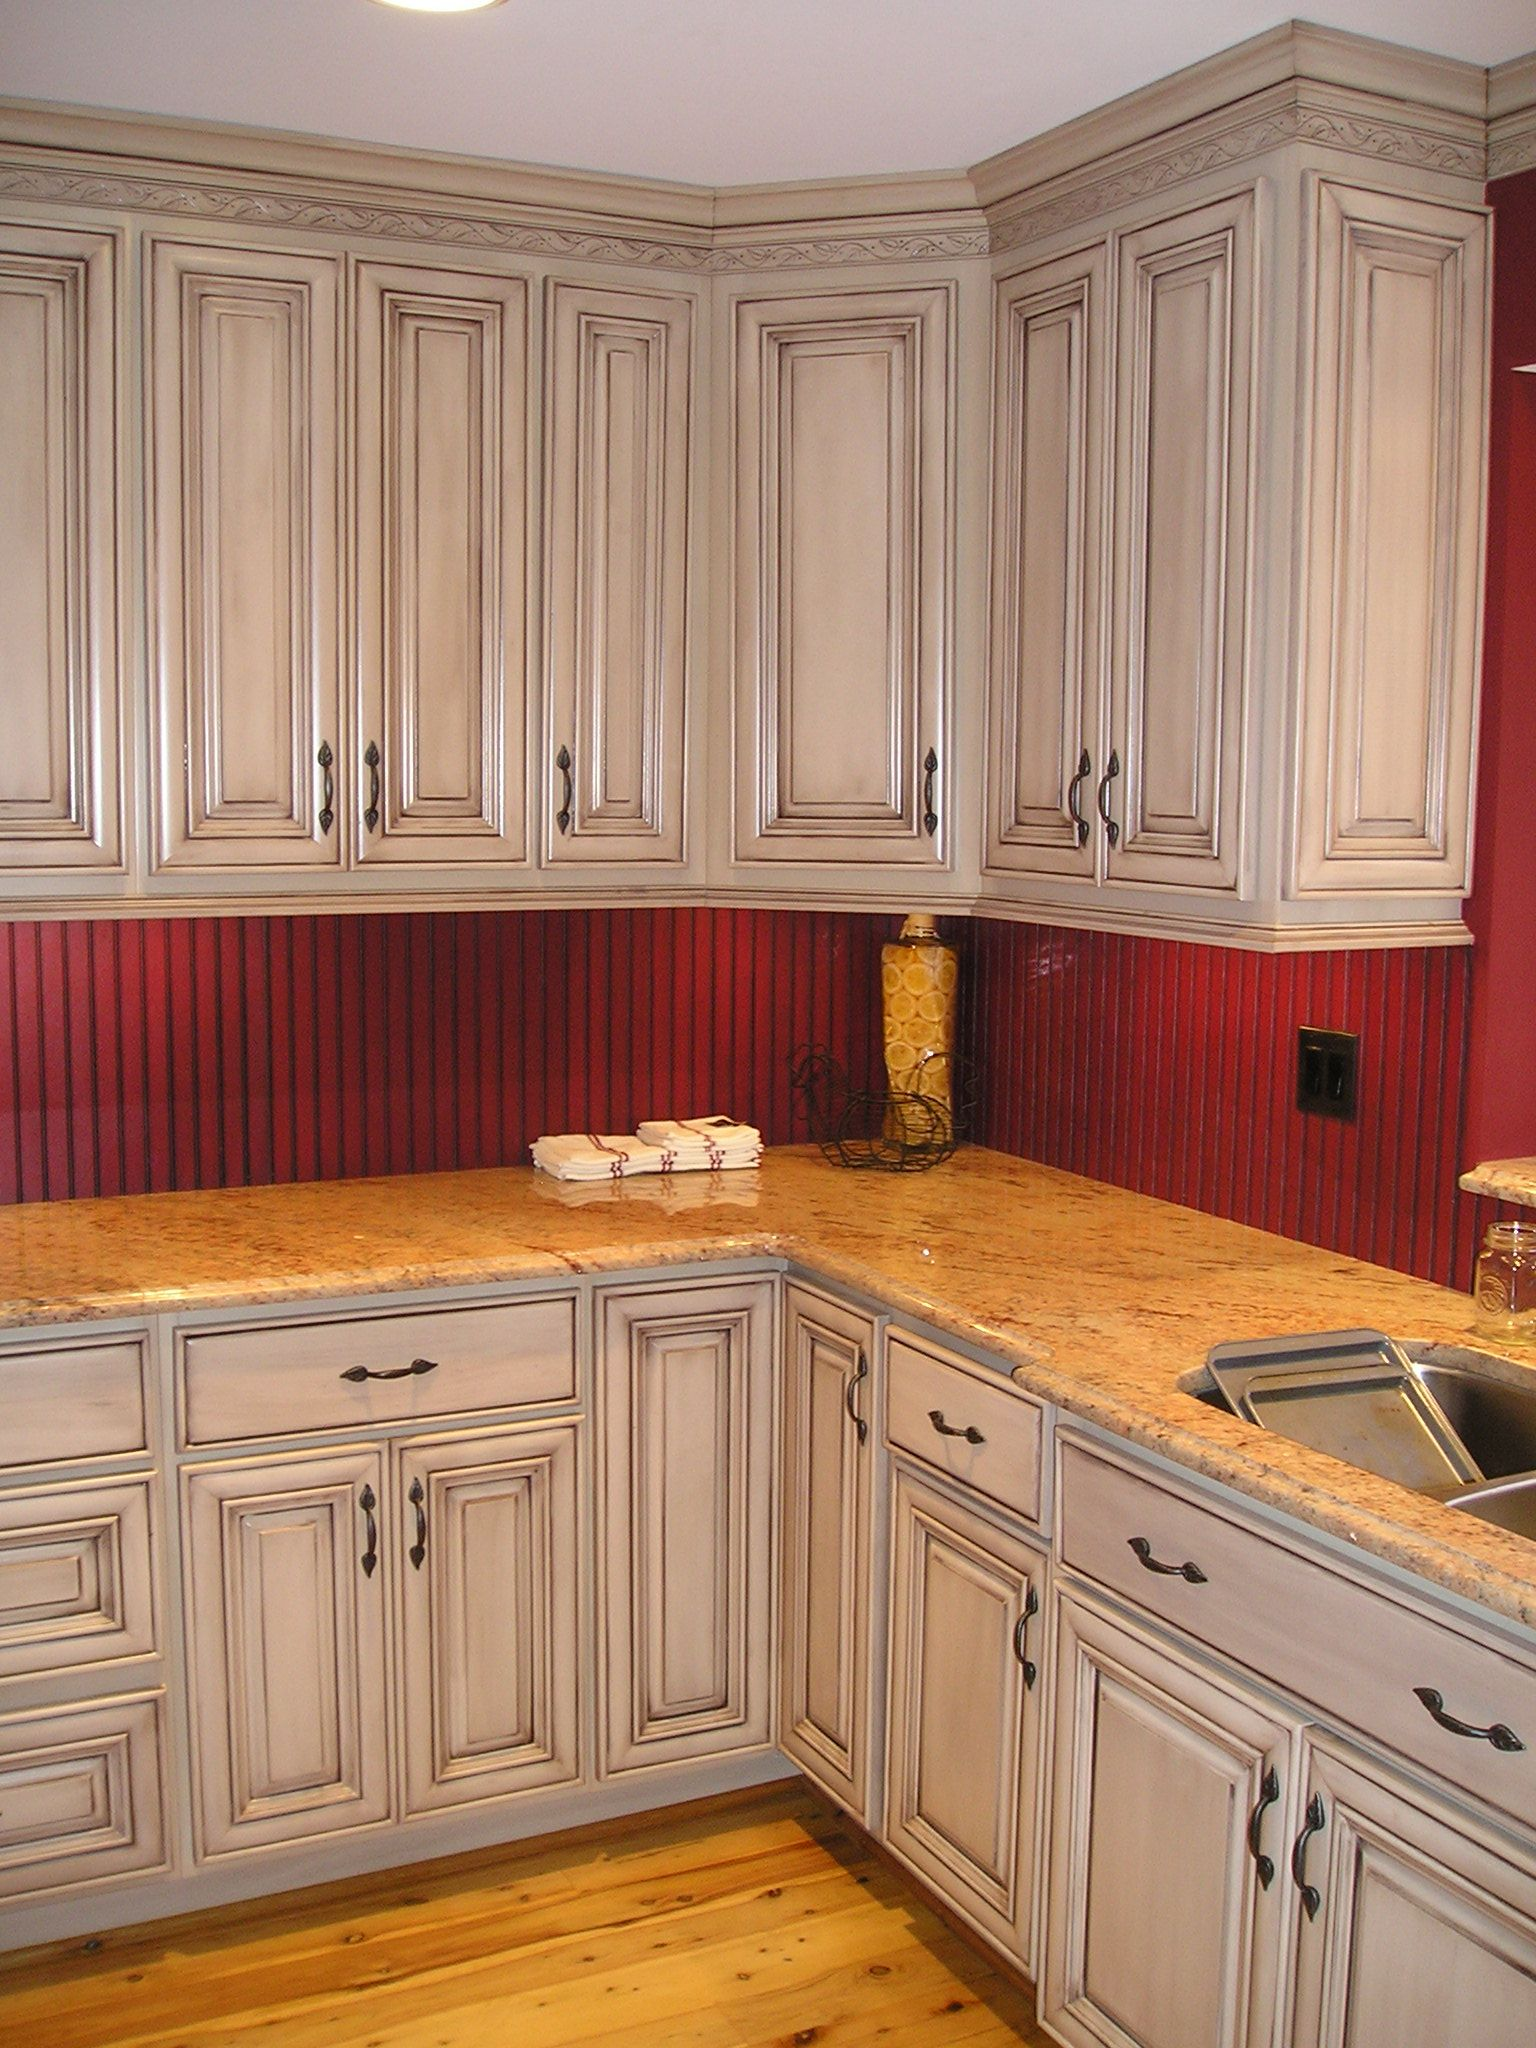 Taupe With Brown Glazed Kitchen Cabinets I Think We Could Easily Update Your Cabinets W Som Taupe Kitchen Cabinets Kitchen Renovation Taupe Kitchen